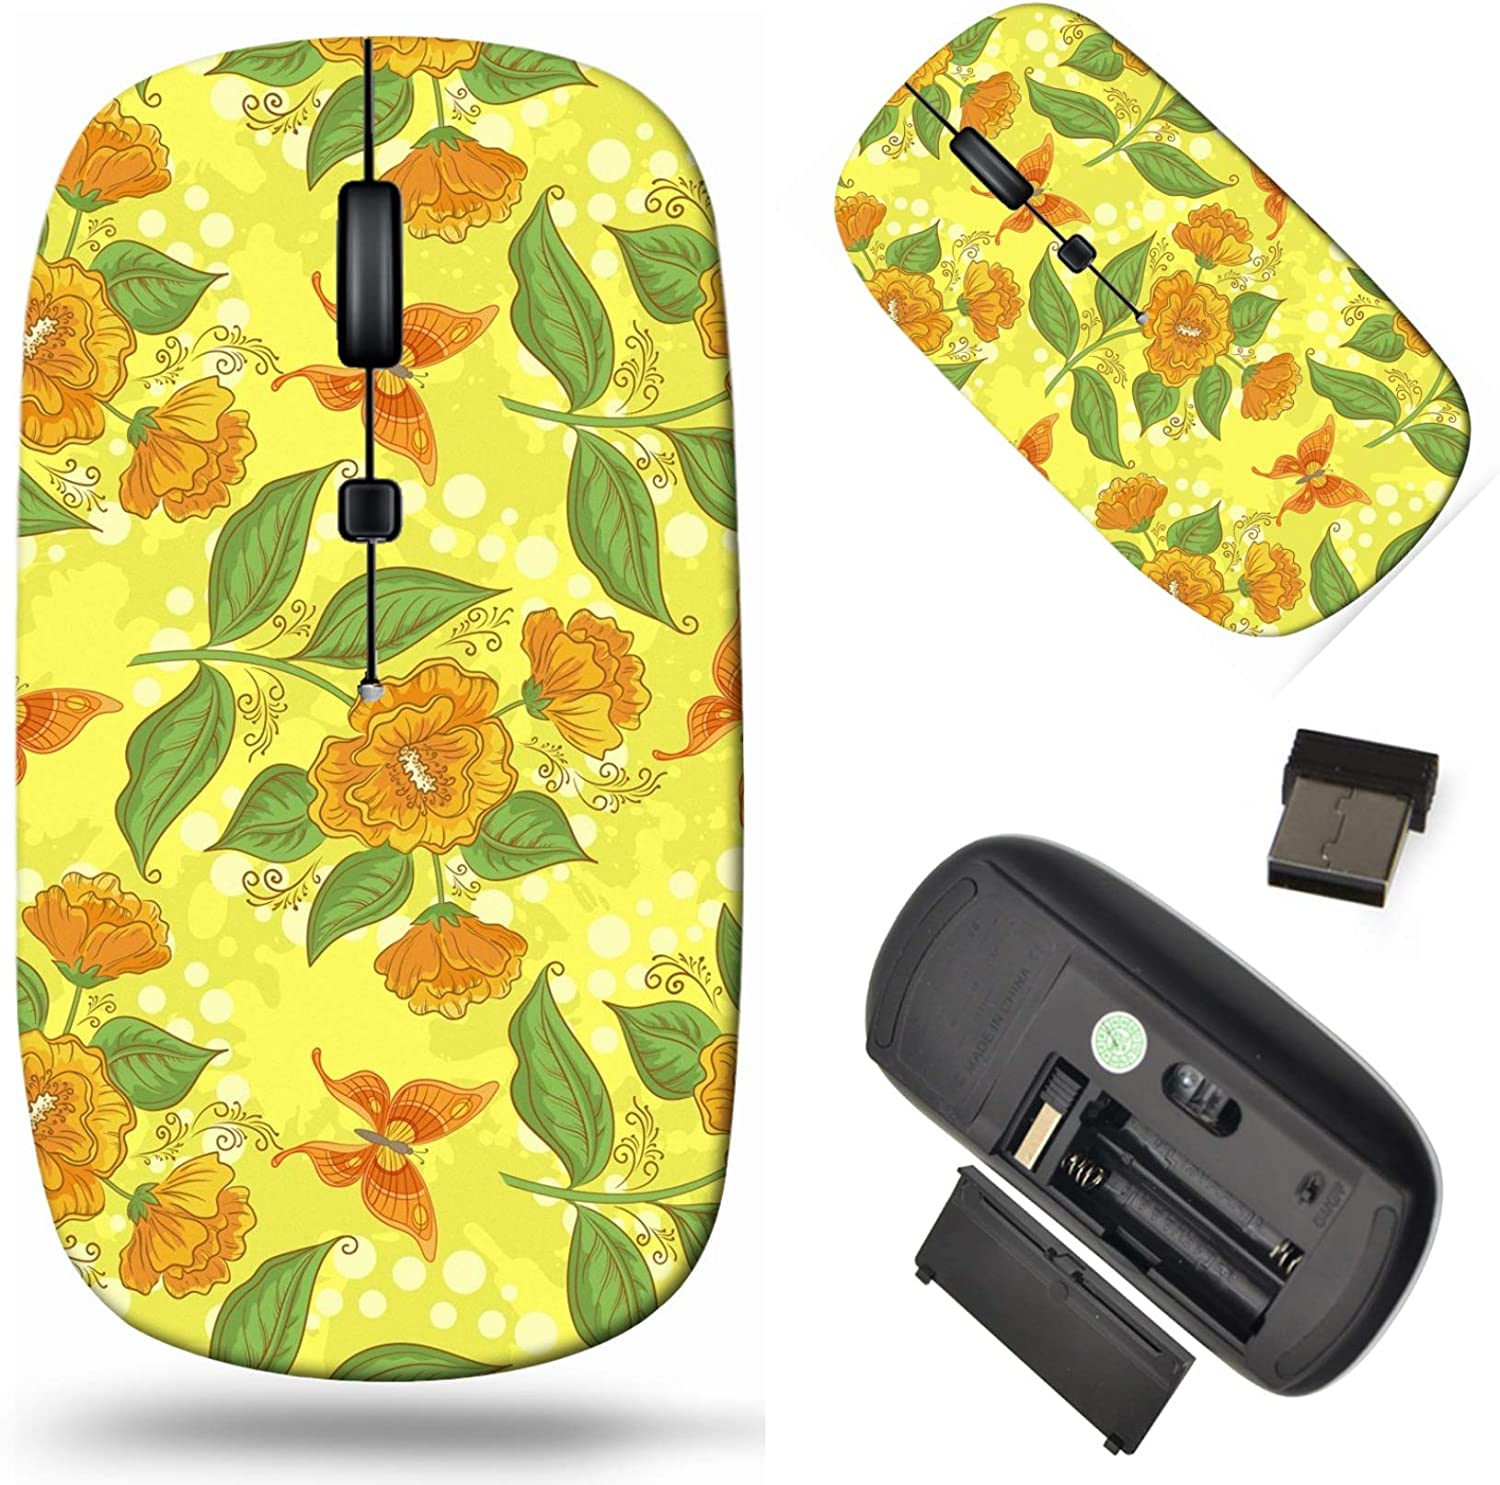 Wireless Sales of SALE items from new works Computer Mouse 2.4G with USB Laptop Receiver Cor Ranking TOP17